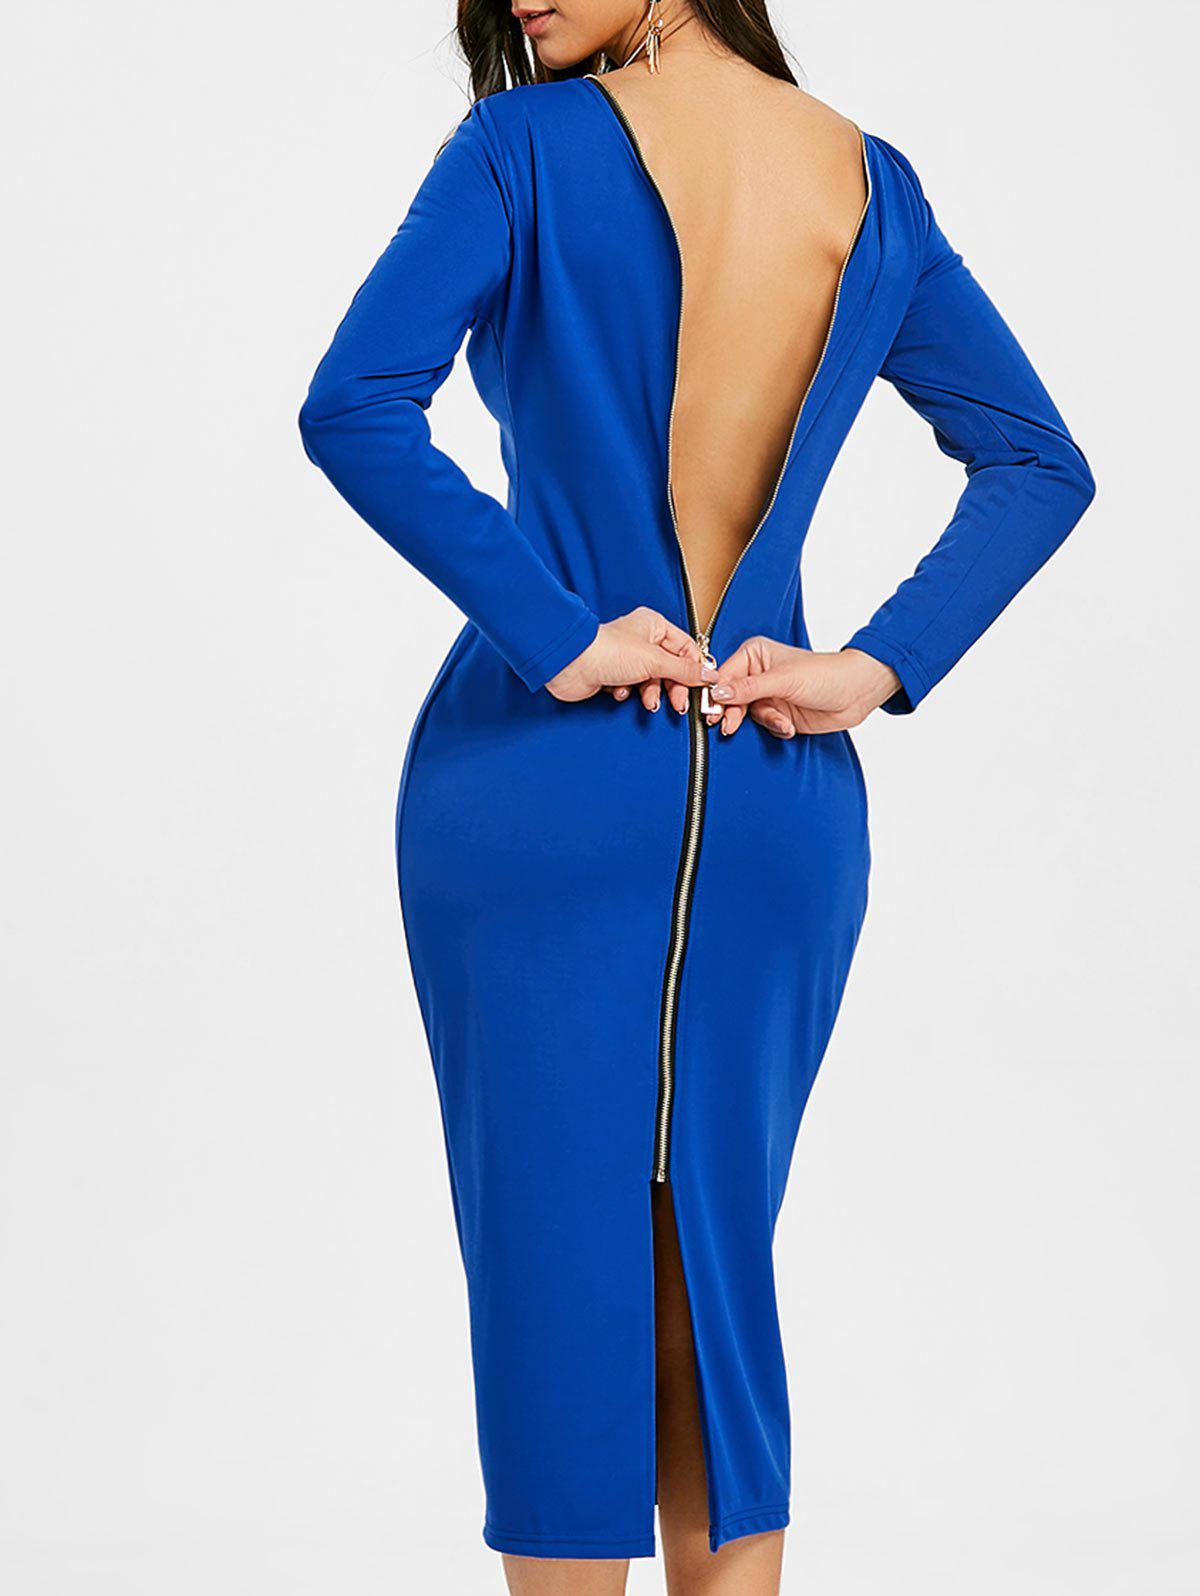 Back Zip Up Long Sleeve Bodycon Dress - BLUE S